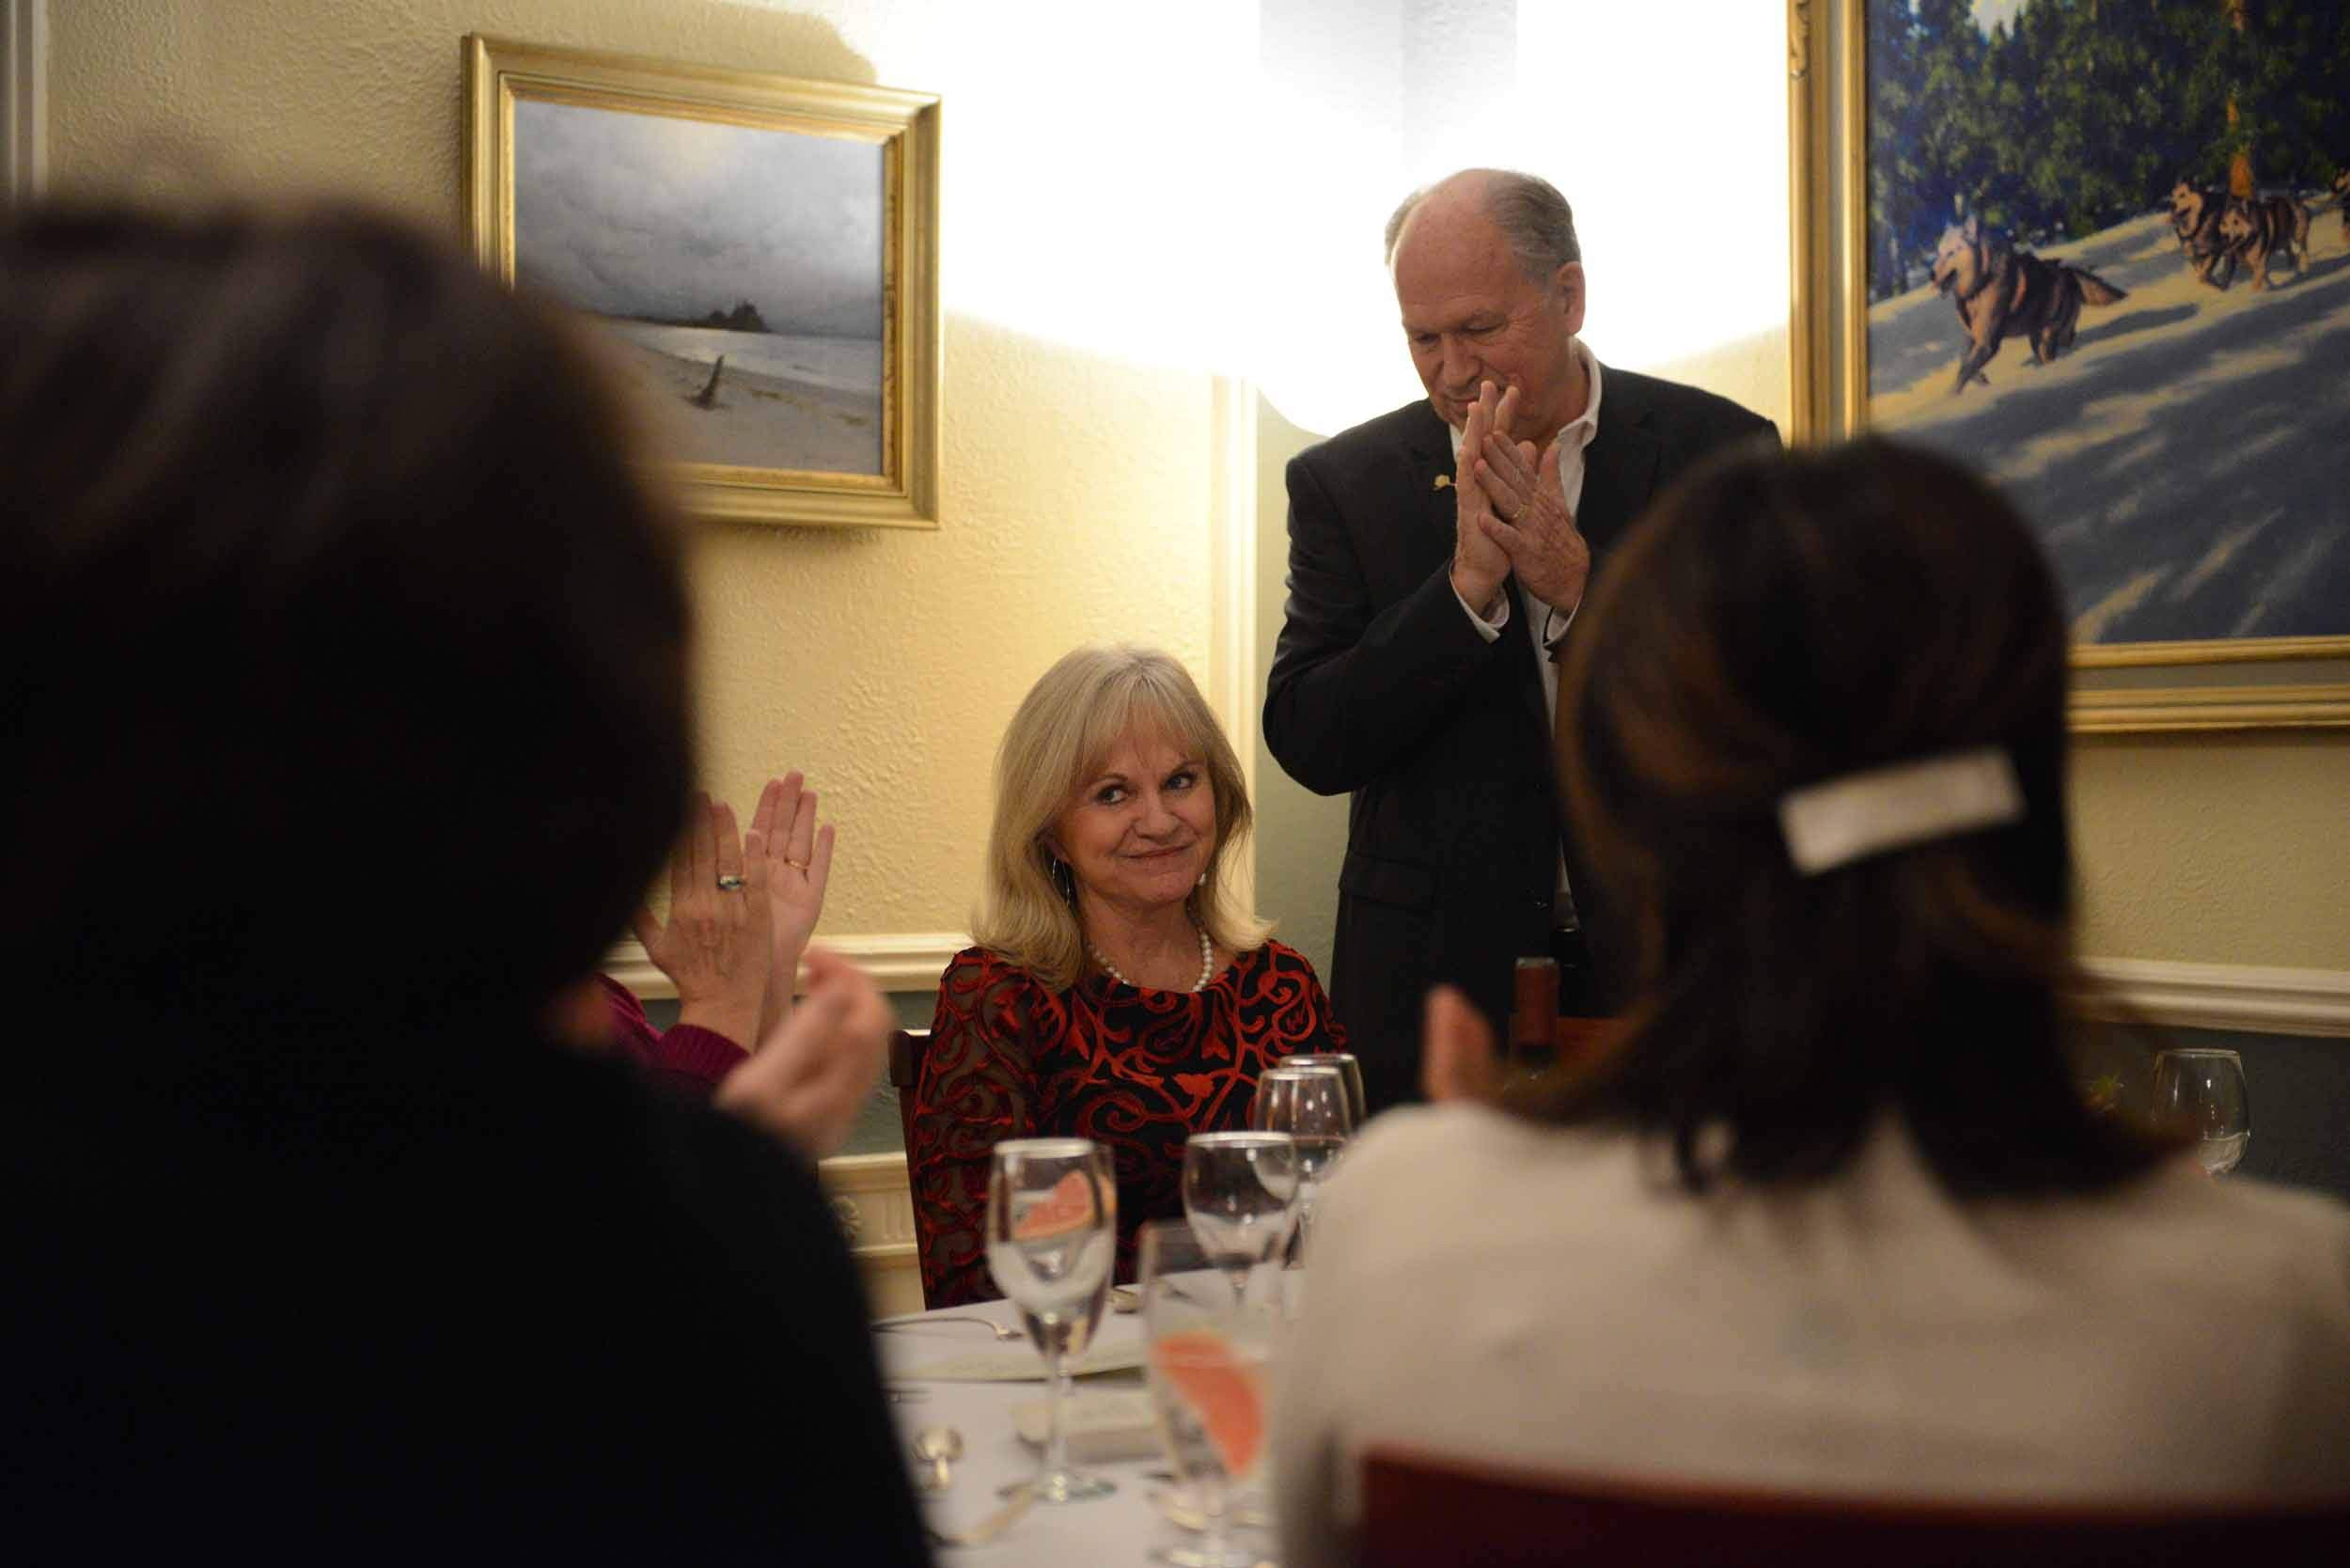 At a speech during a private dinner at the Governor's Mansion at the end of Governor Walker's term, senior staff and administration officials applaud First Lady Donna Walker. November 12, 2018.